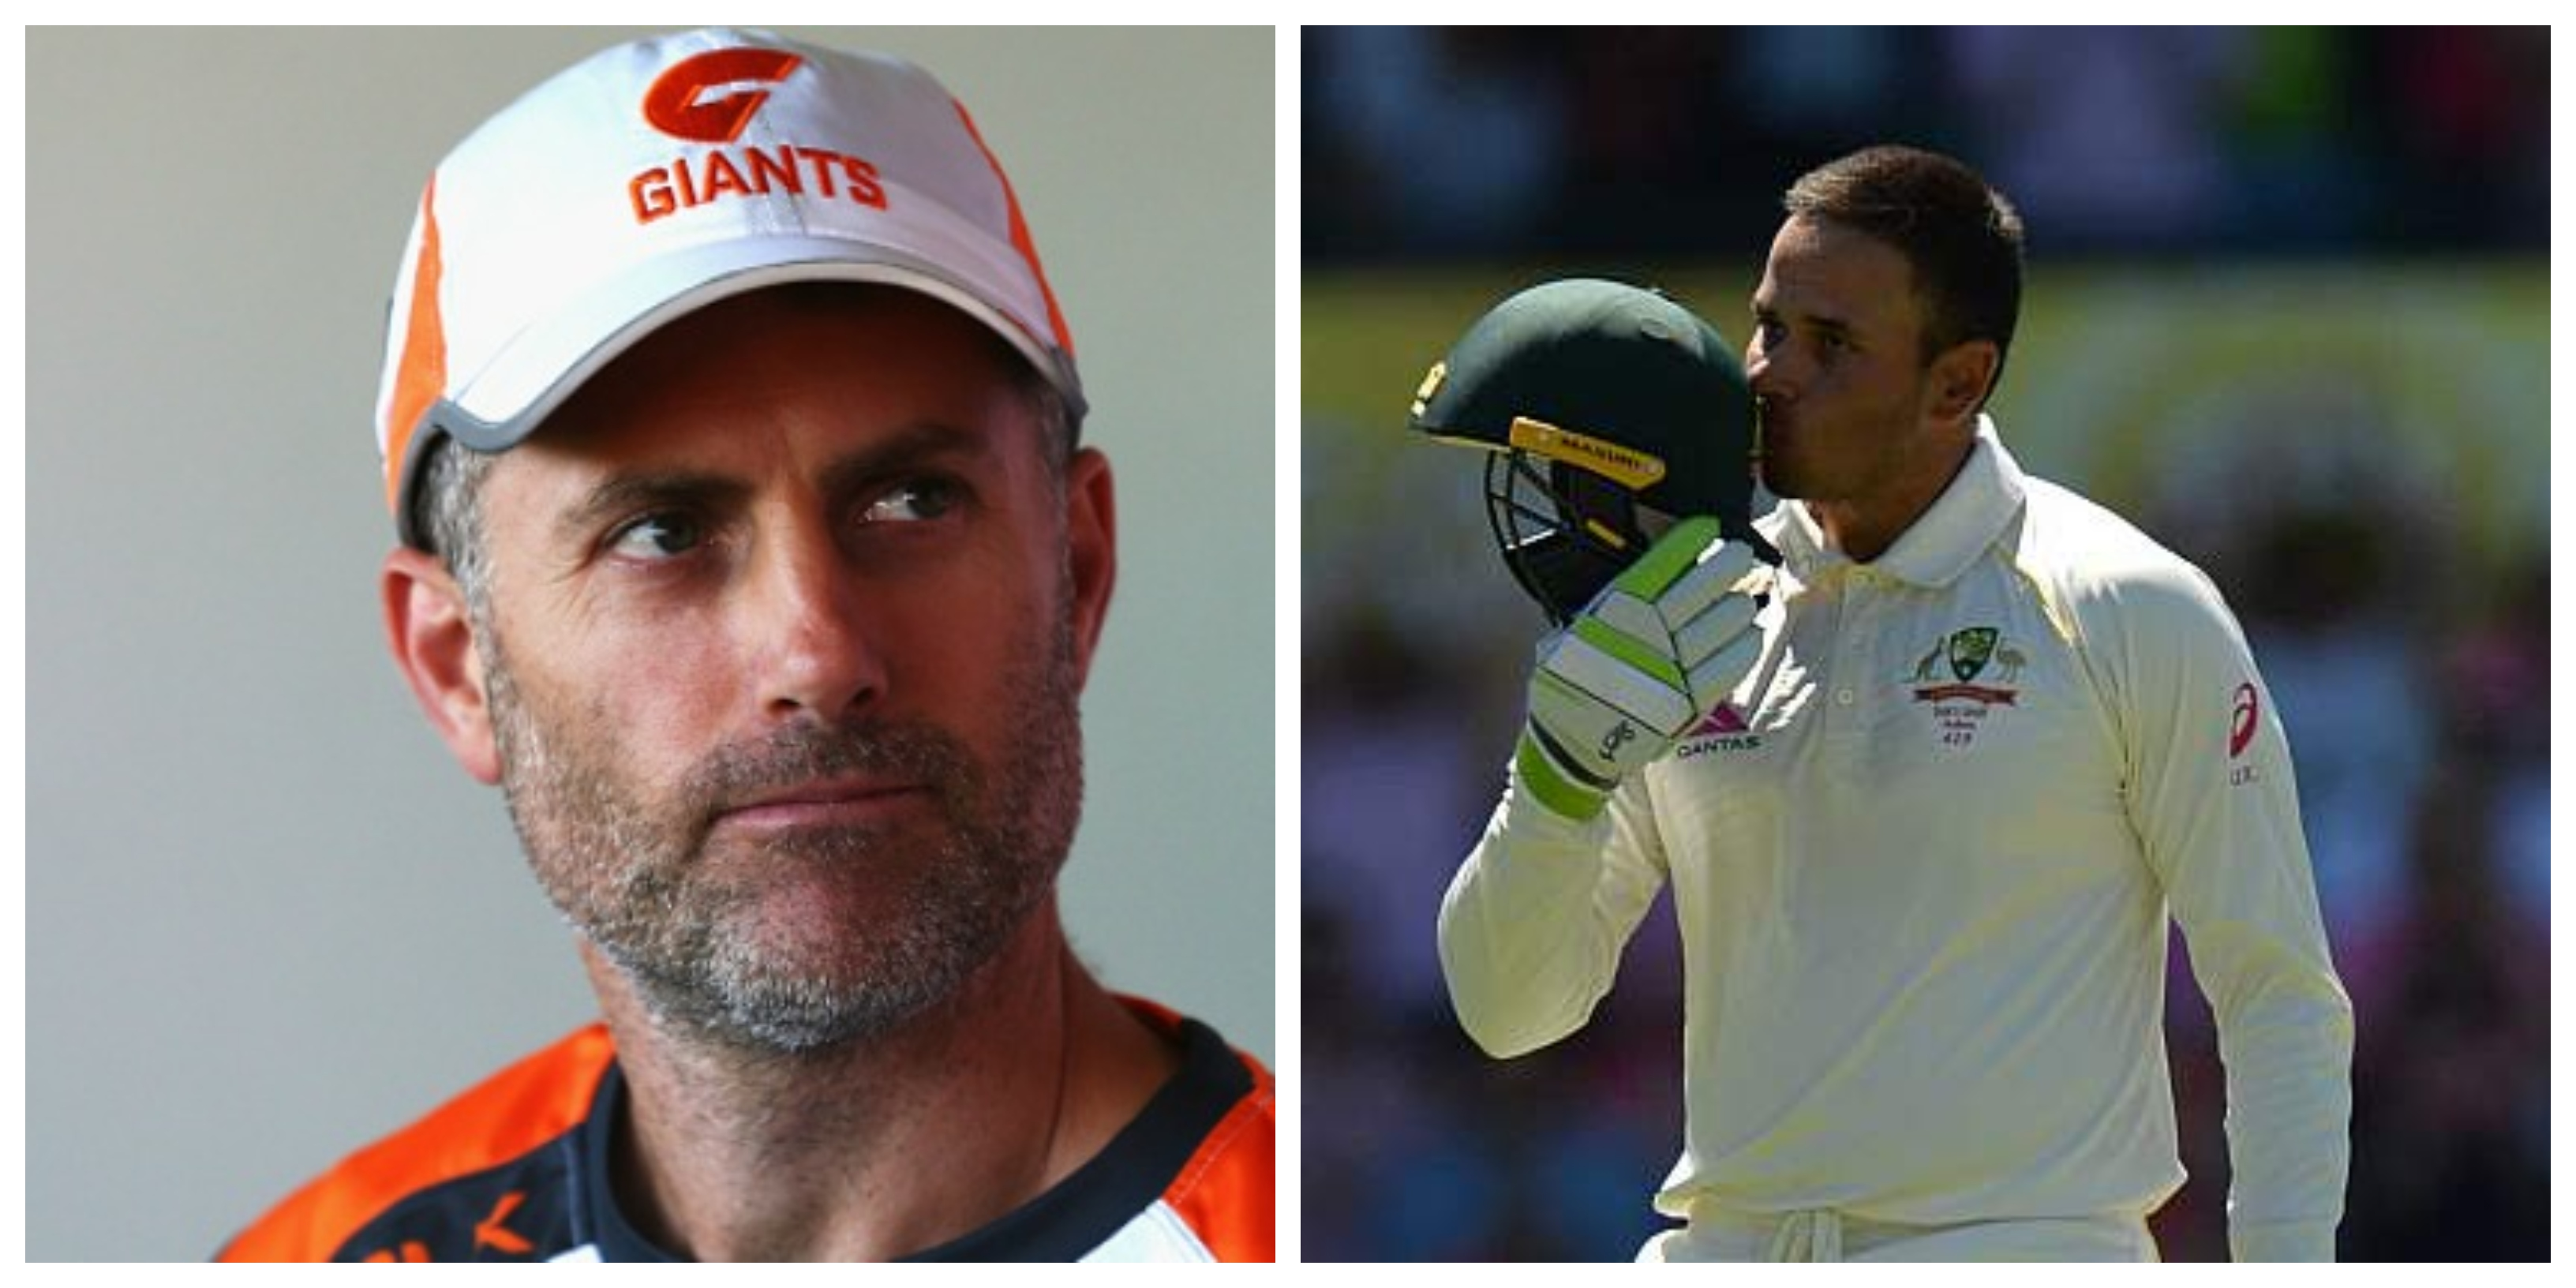 Katich feels Khawaja should move up the order in absence of David Warner.